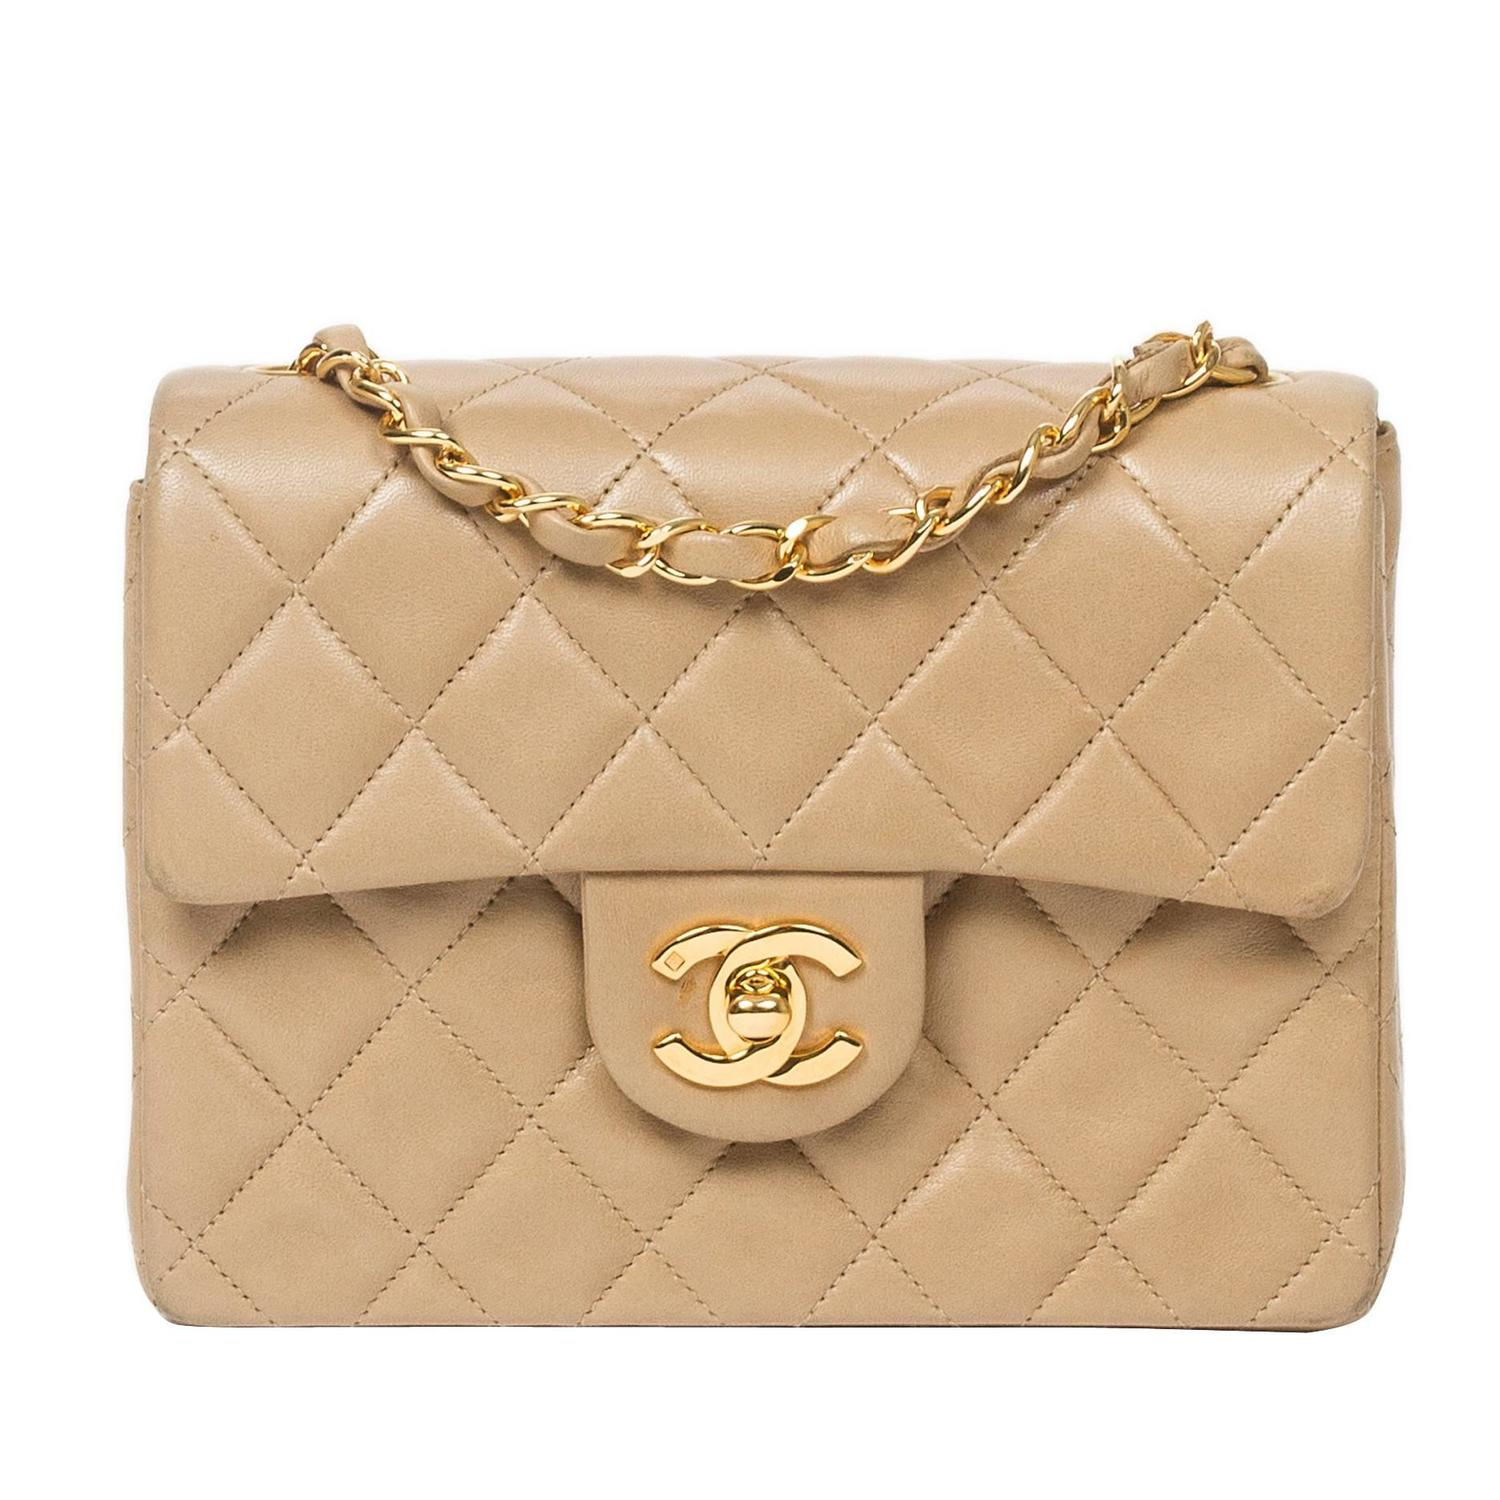 c55298aa1a3f Excellent Chanel Classic Mini Flap Bag Beige Quilted Leather at 1stdibs LL12